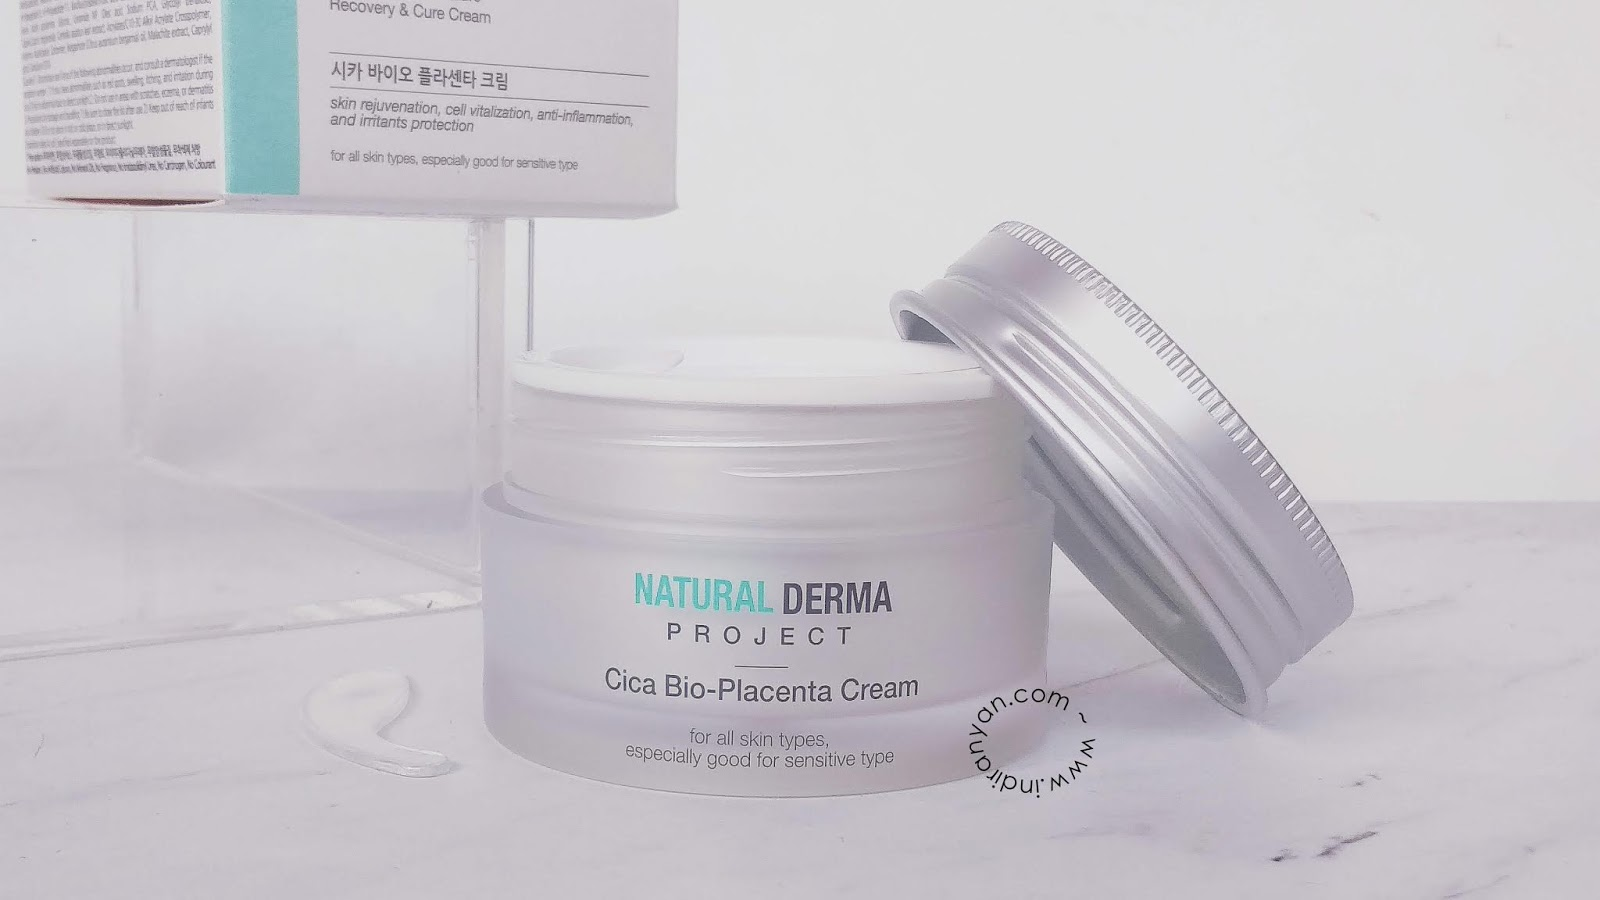 natural-derma-project-cica-bio-placenta-cream